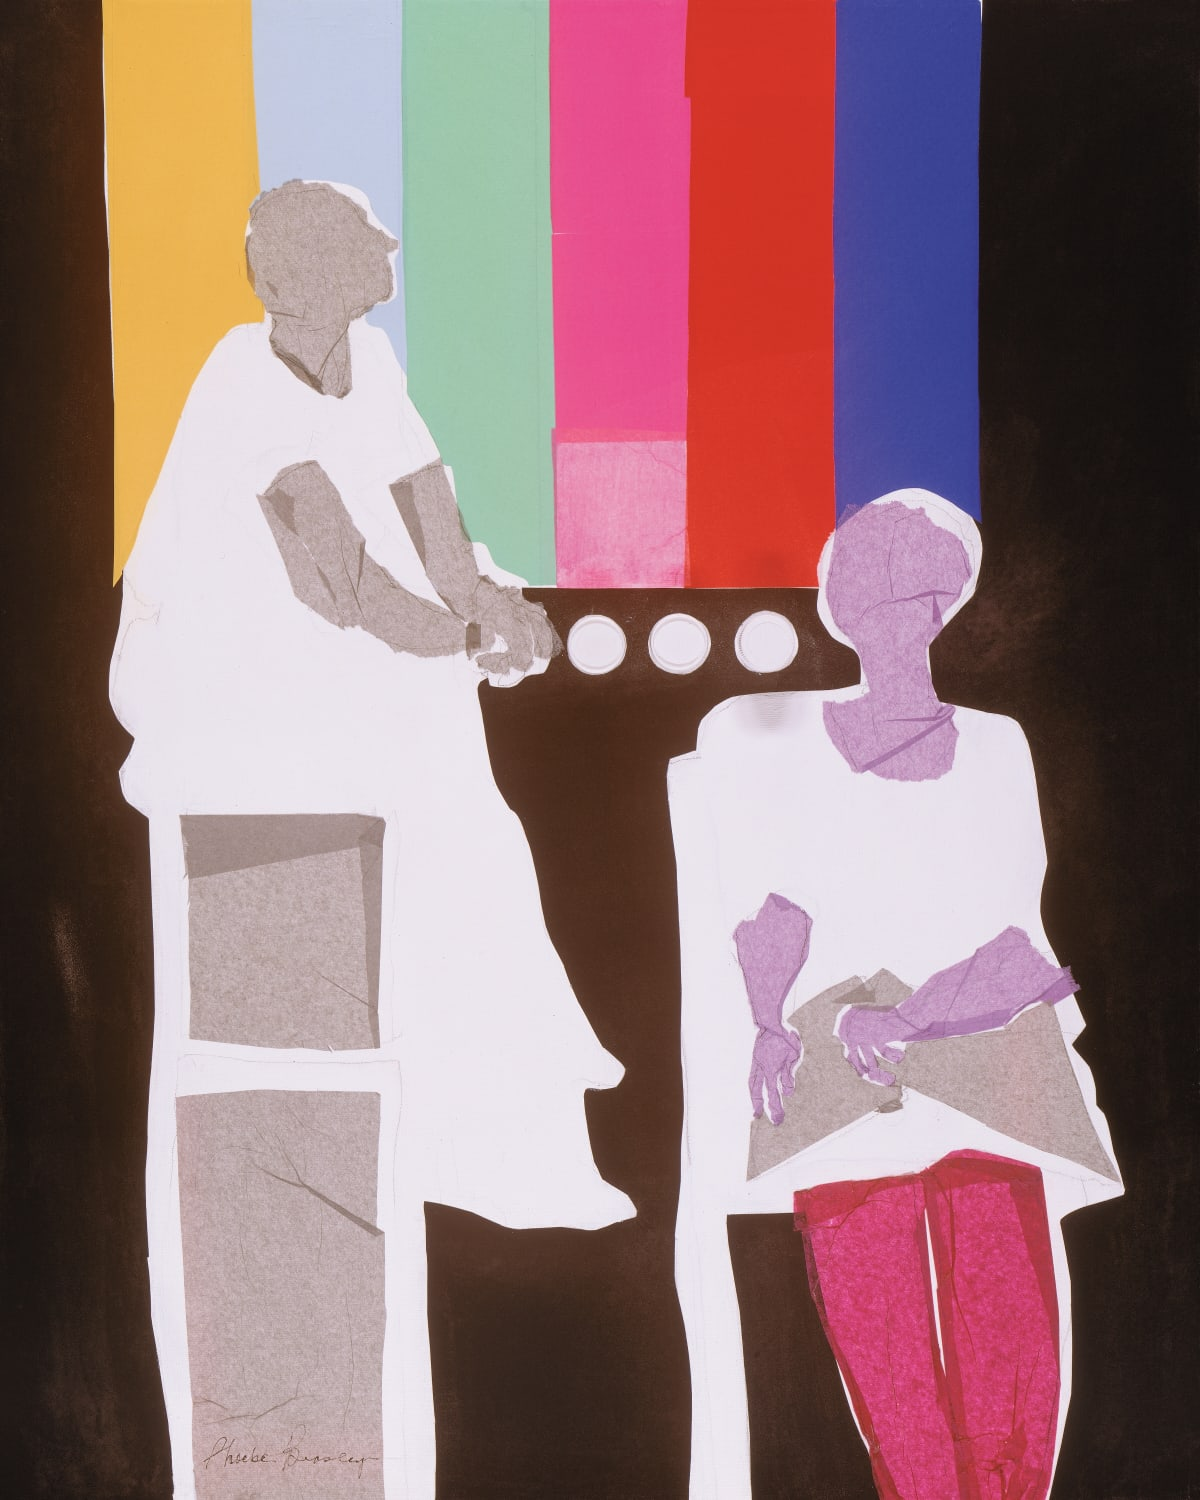 """Phoebe Beasley Soap Box, 1997 Collage on Canvas 30"""" x 23"""""""